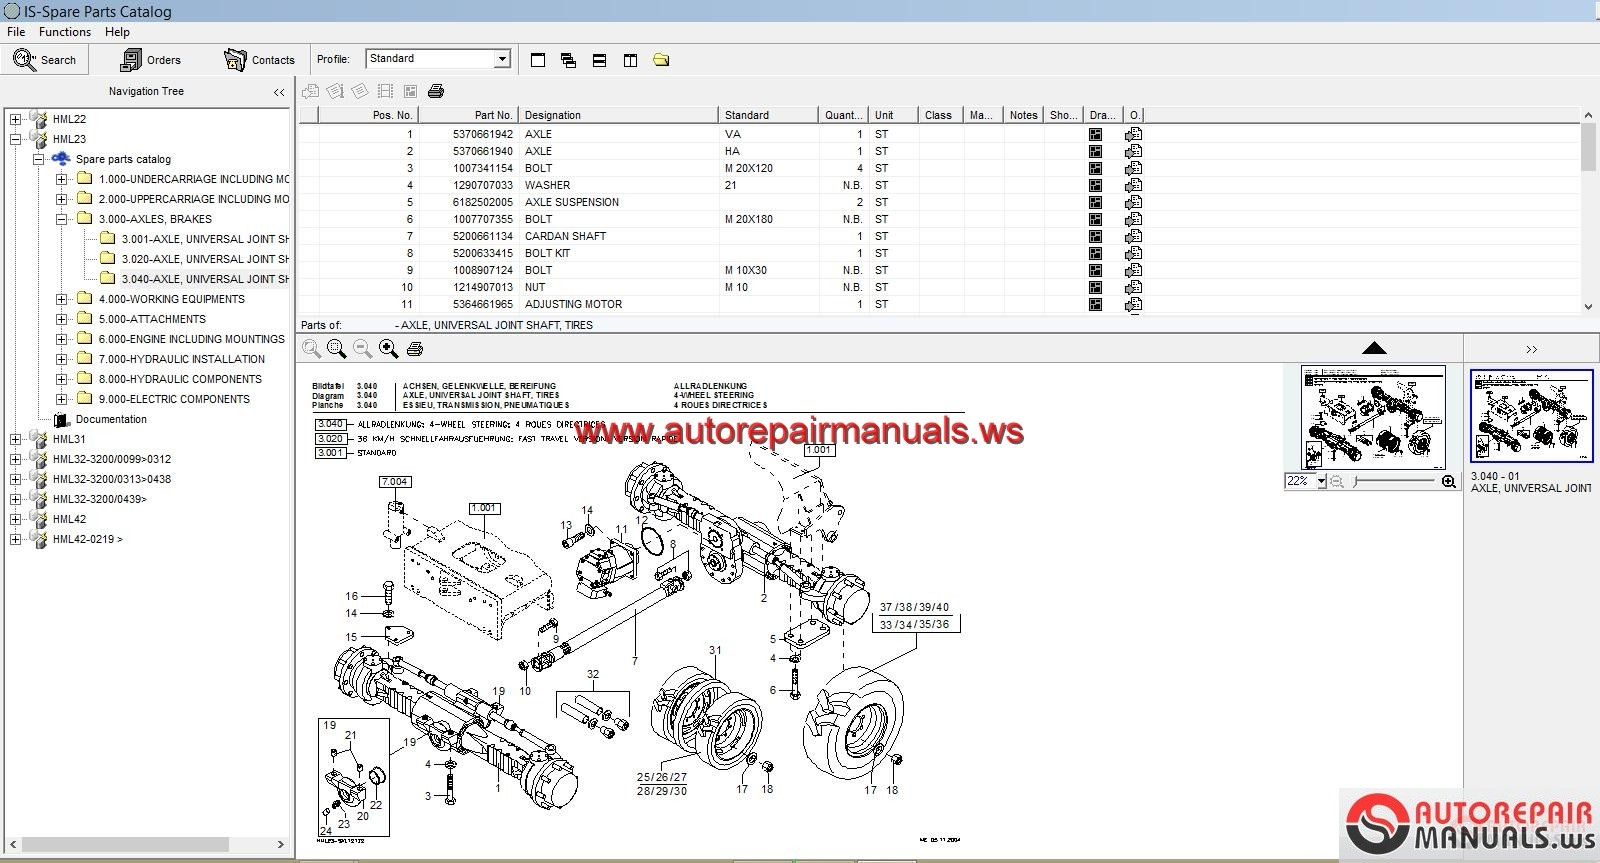 2017 Toyota Hilux Trailer Wiring Diagram Data Flow For Employee Management System Manual Transmission Free Engine